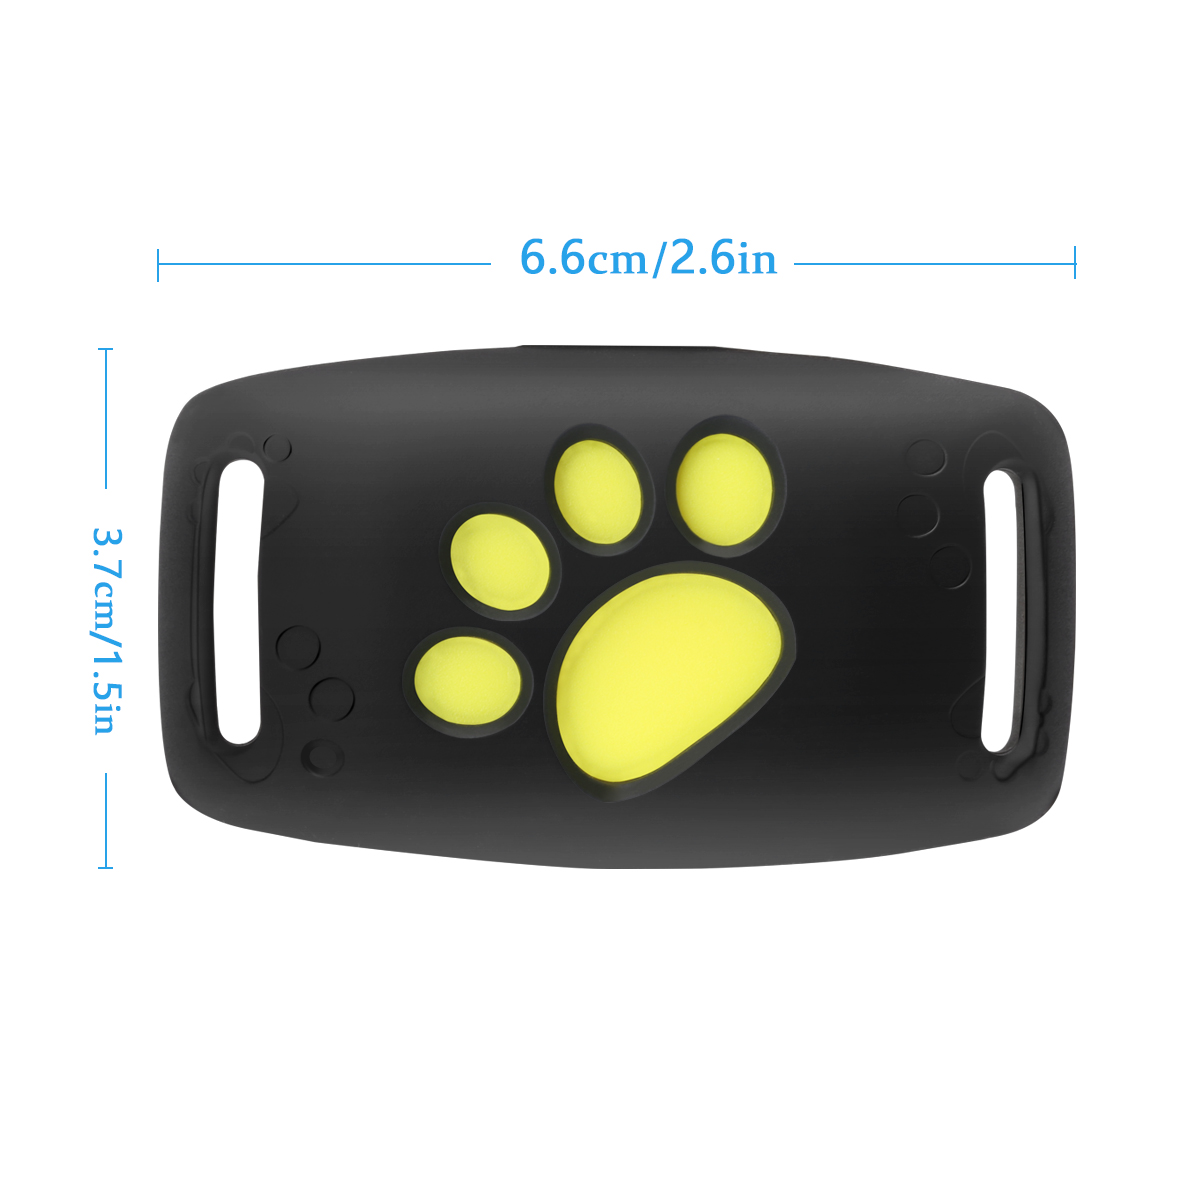 Pet GPS Tracker device Collar & Activity Monitor for Cats Dogs, Waterproof  Anti Lost Global Monitor Tracker Collar Realtime GPS Tracking Locator